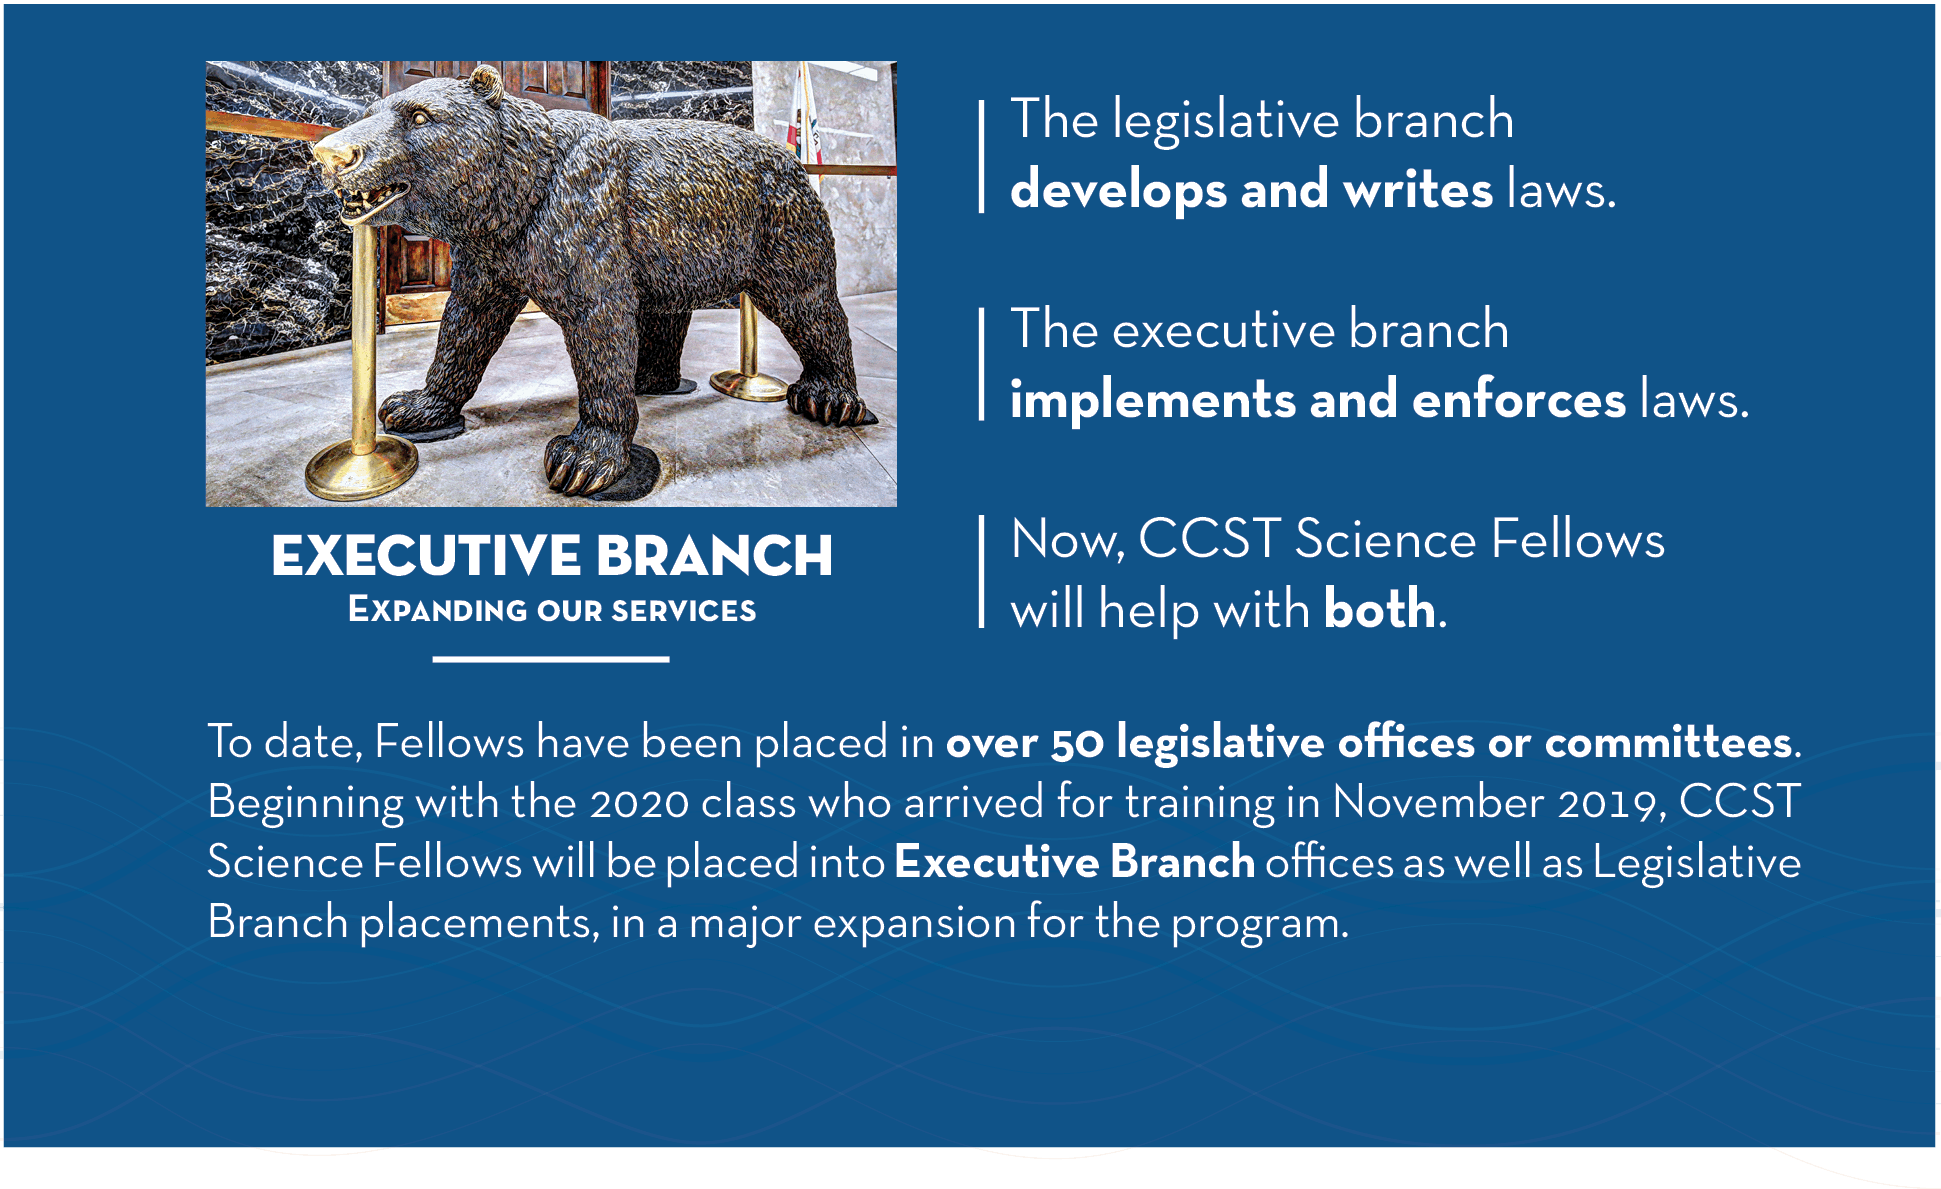 Executive Branch: Expanding our services